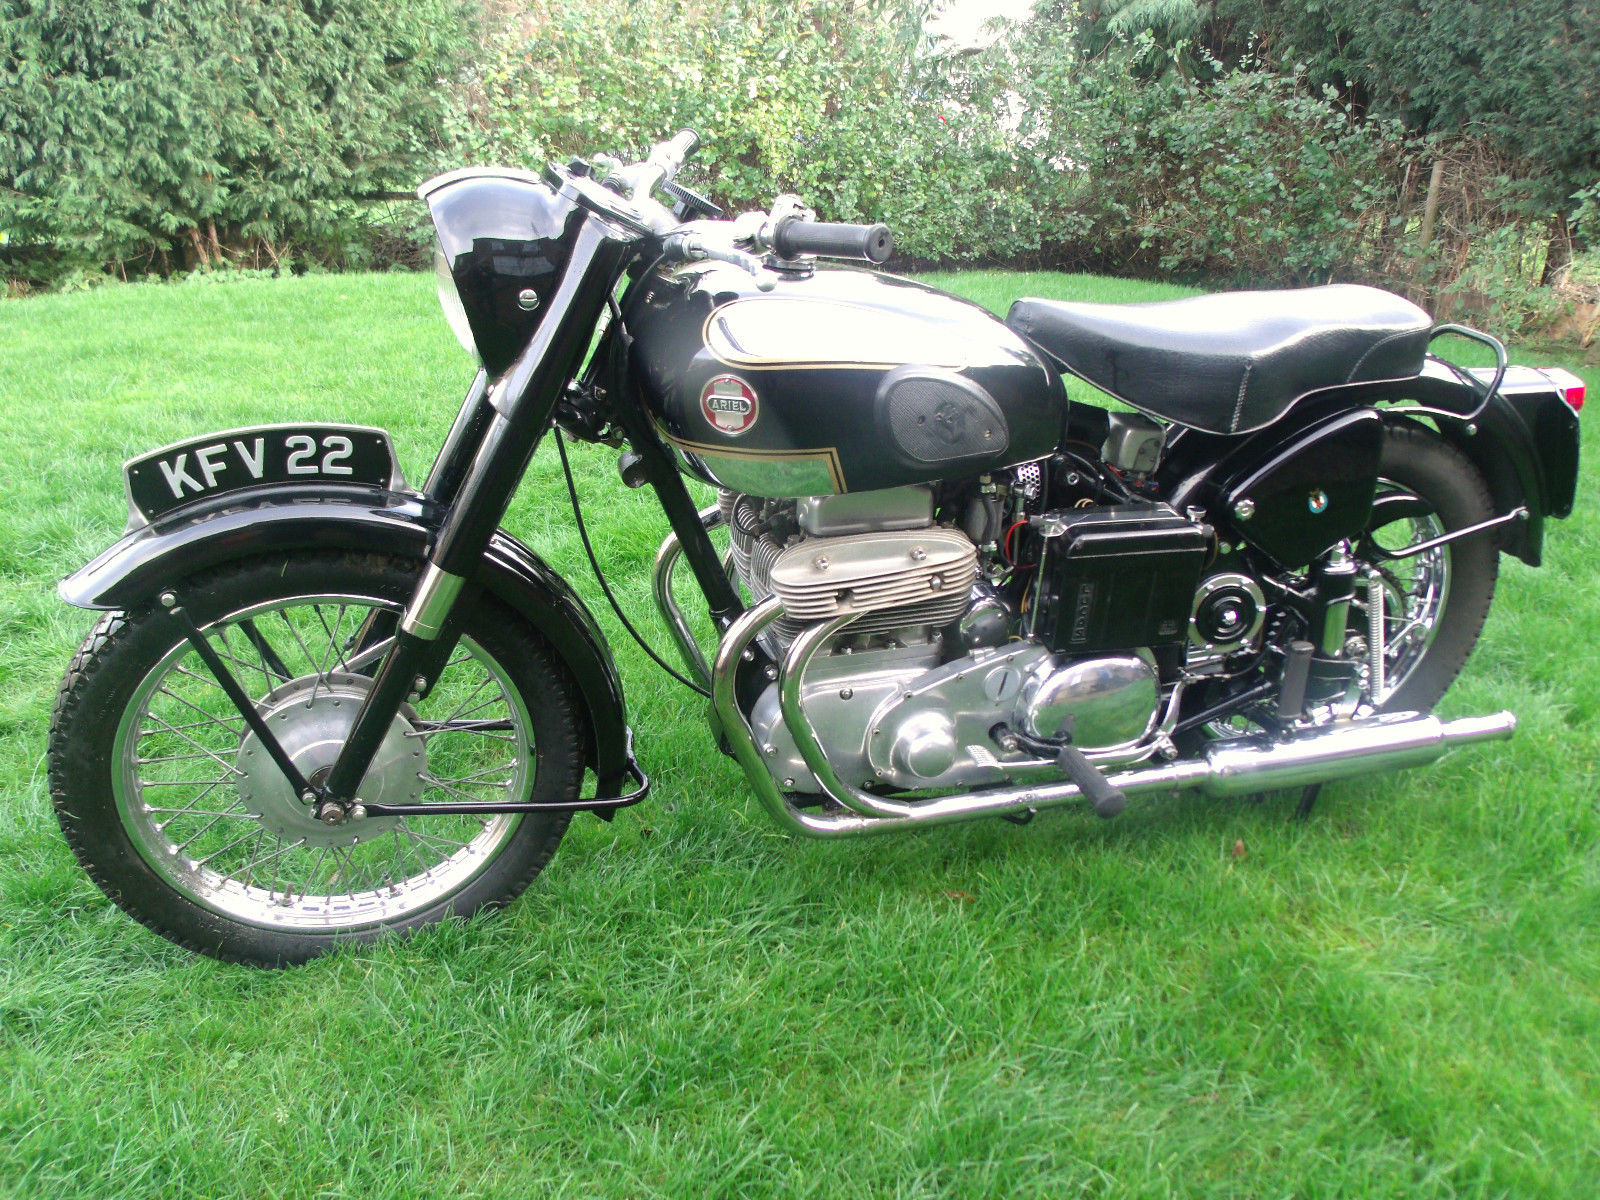 Ariel Square 4 - 1955 - Left Side View, Gas Tank, Front Forks, Frame and Headlight.